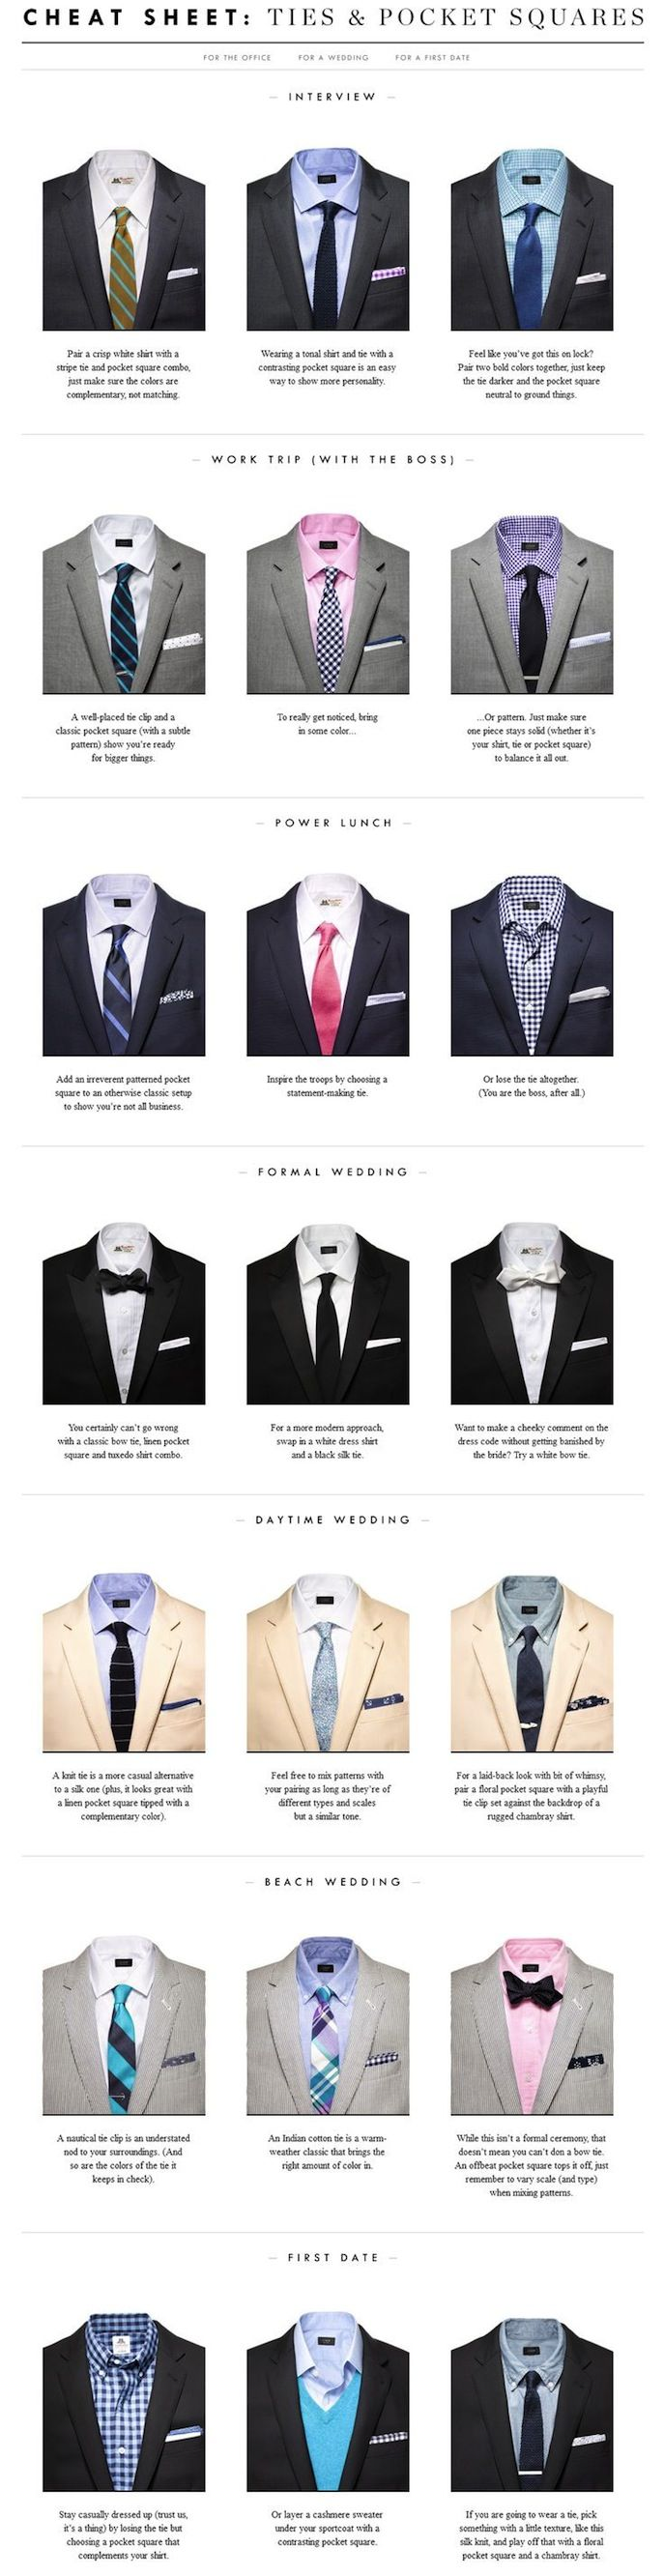 For The Guys: Pocket Squares - Look Linger Love Look Linger Love